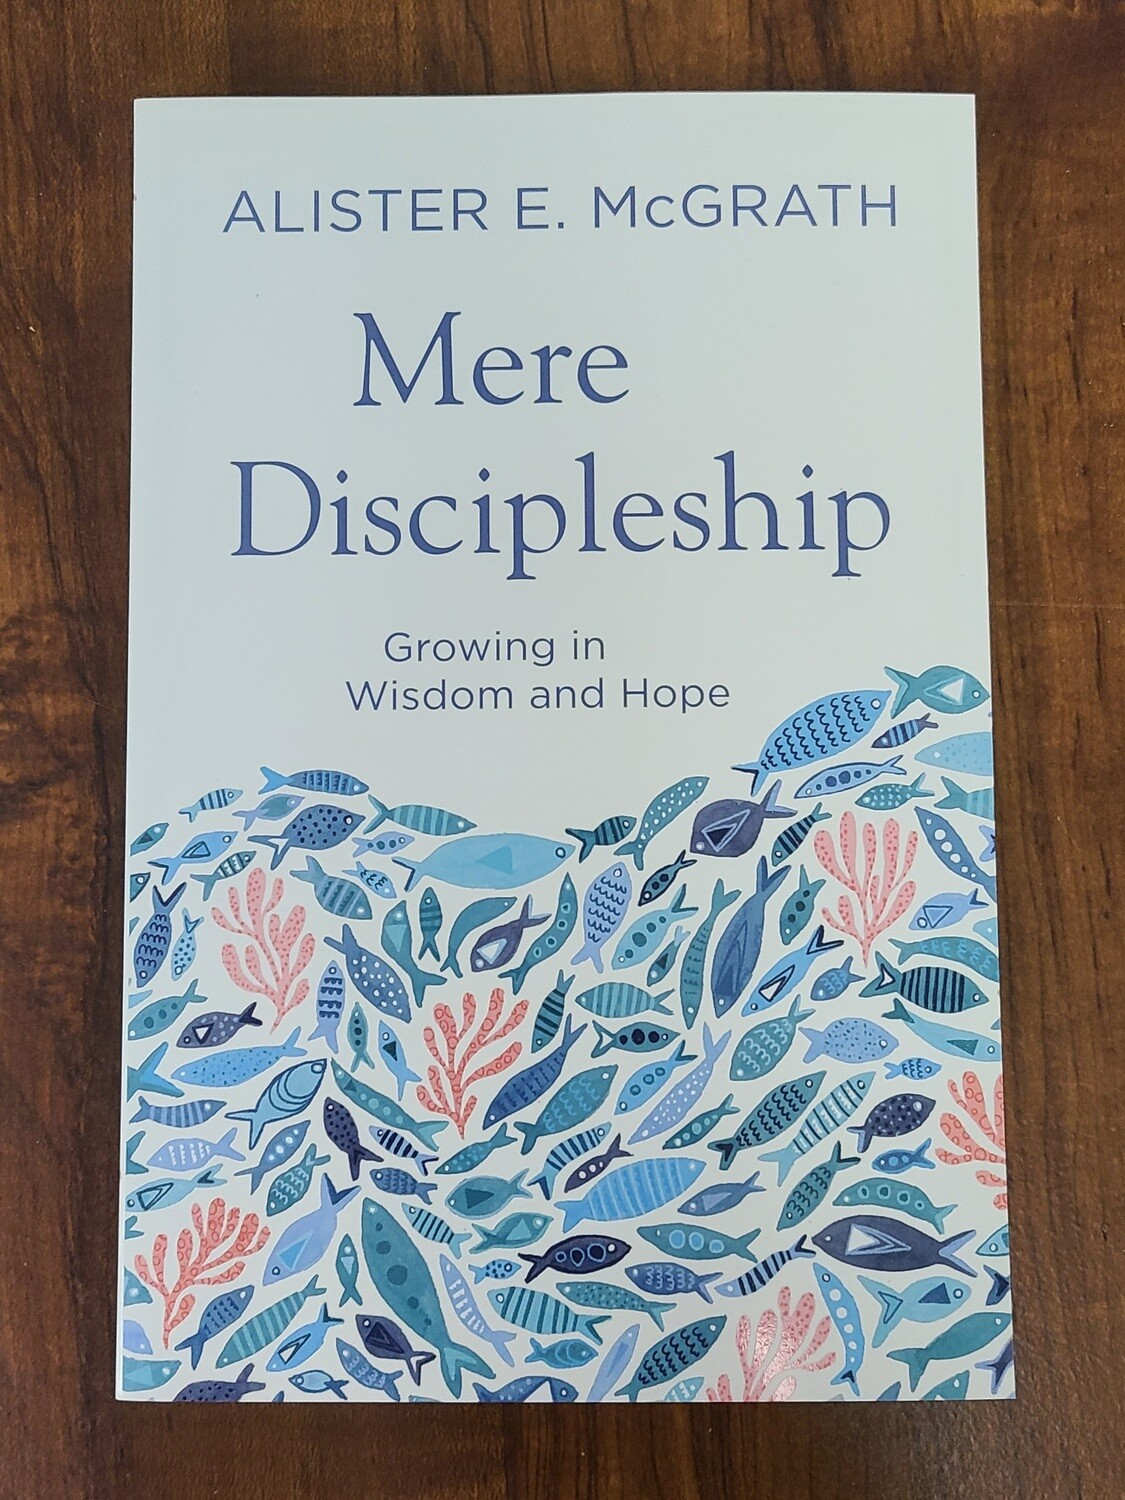 Mere Discipleship: Growing in Wisdom and Hope by Alister E. McGrath